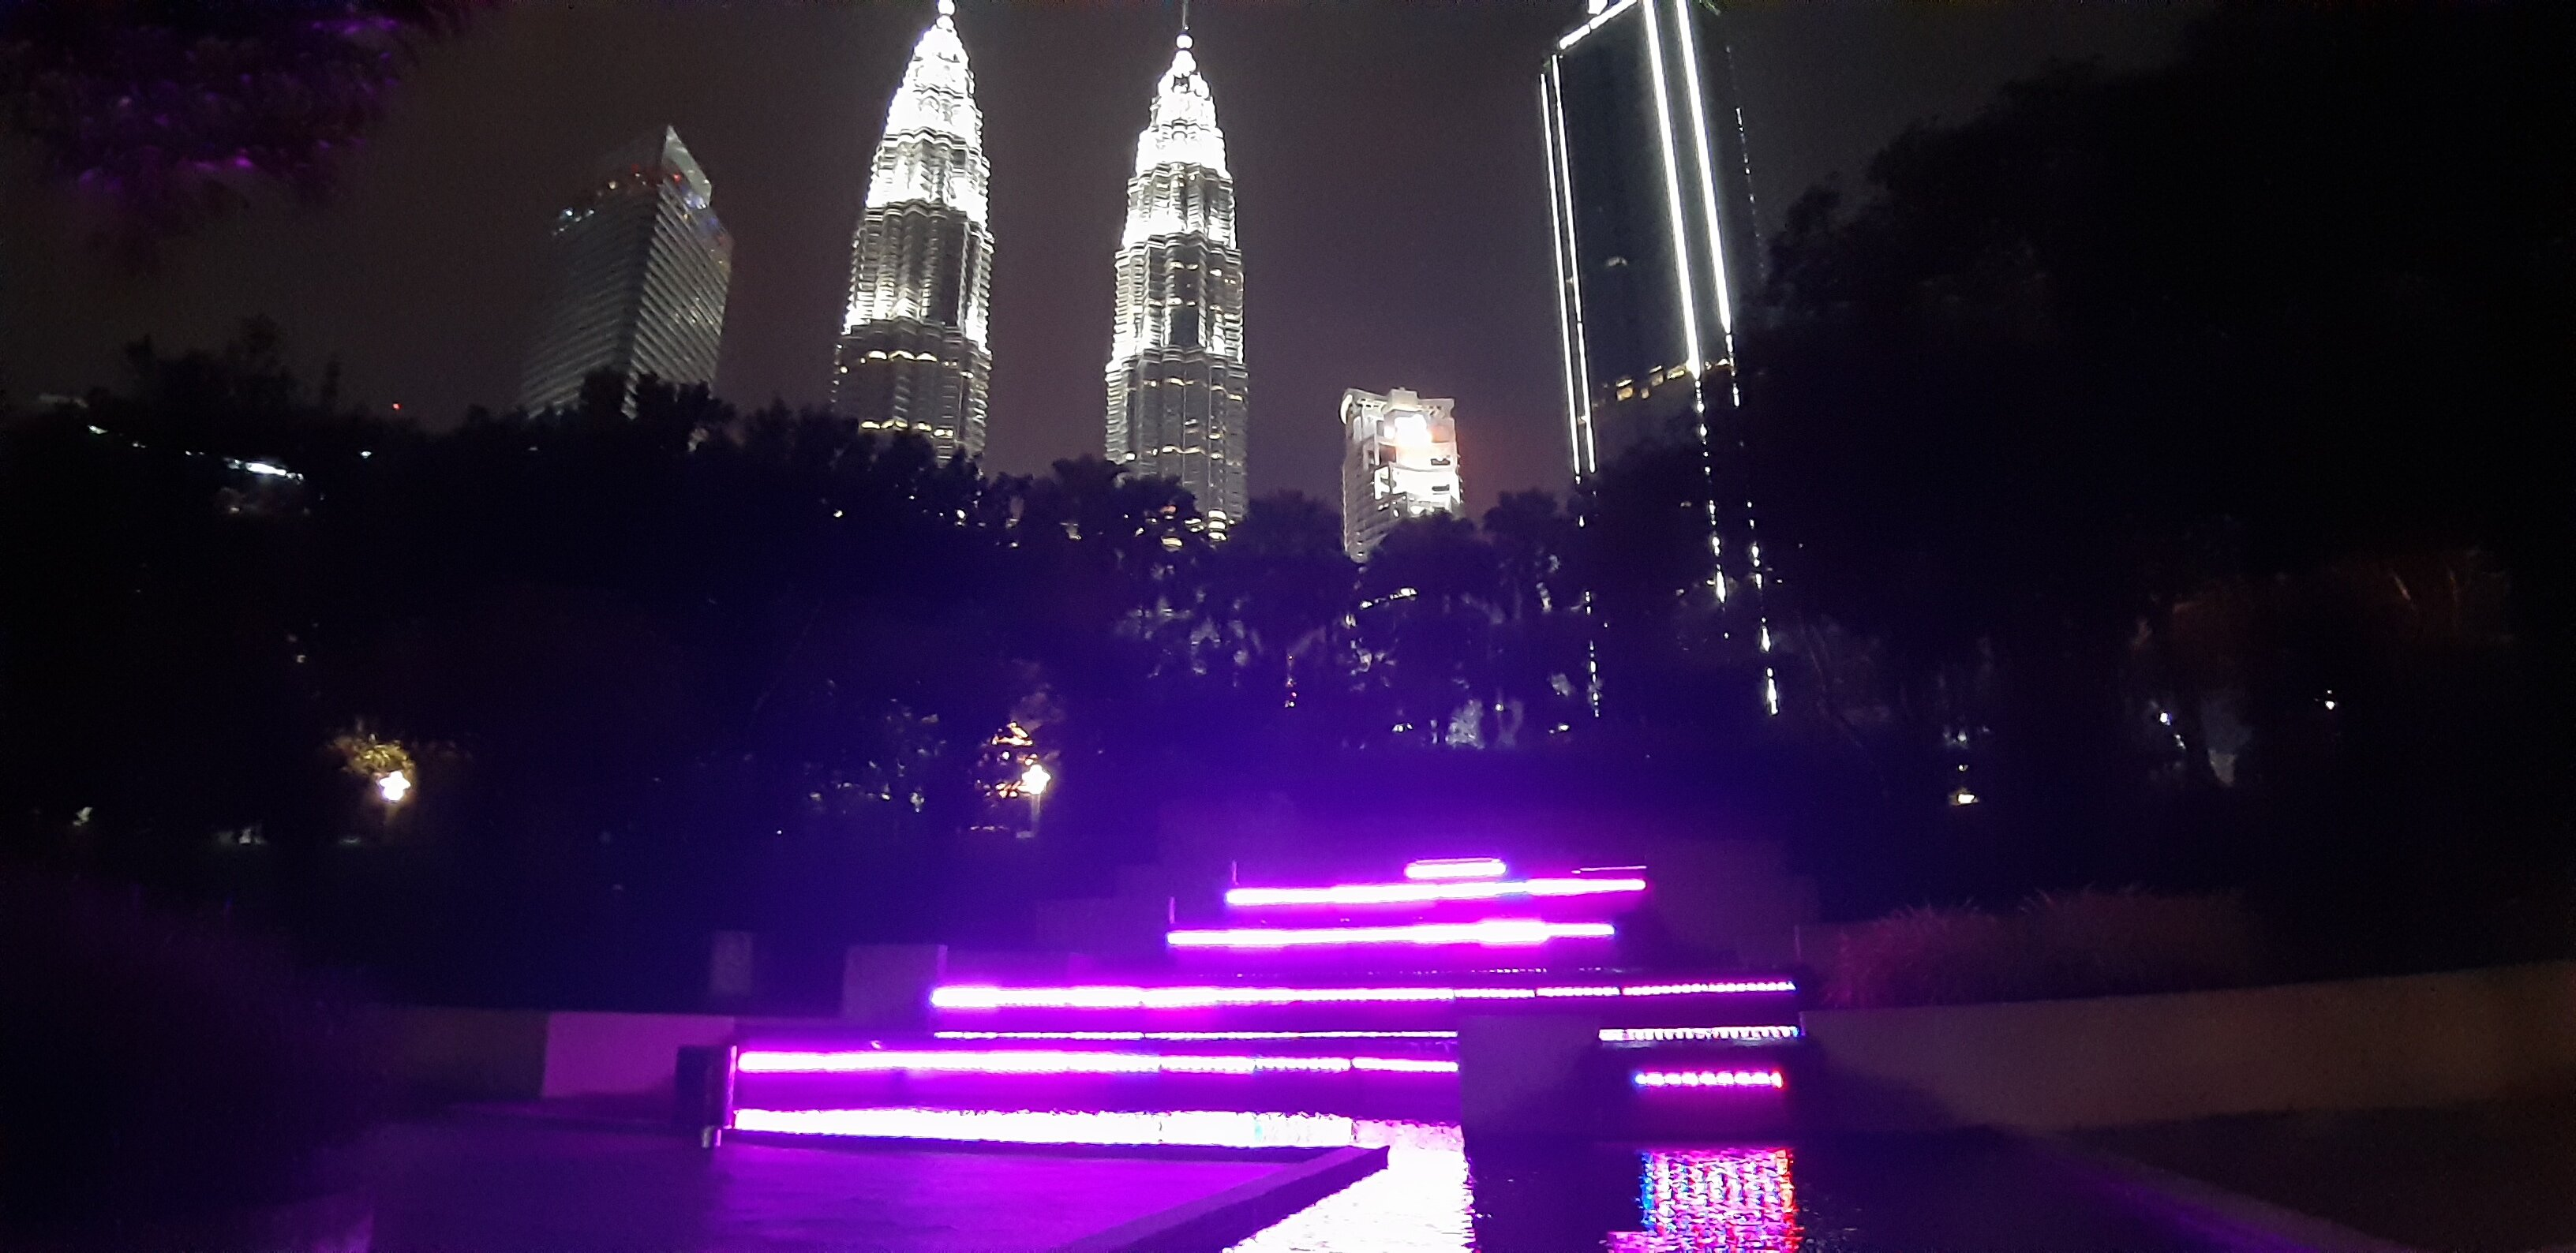 Petronas Towers from a section of KLCC park by the Kuala Lumpur Convention Center.